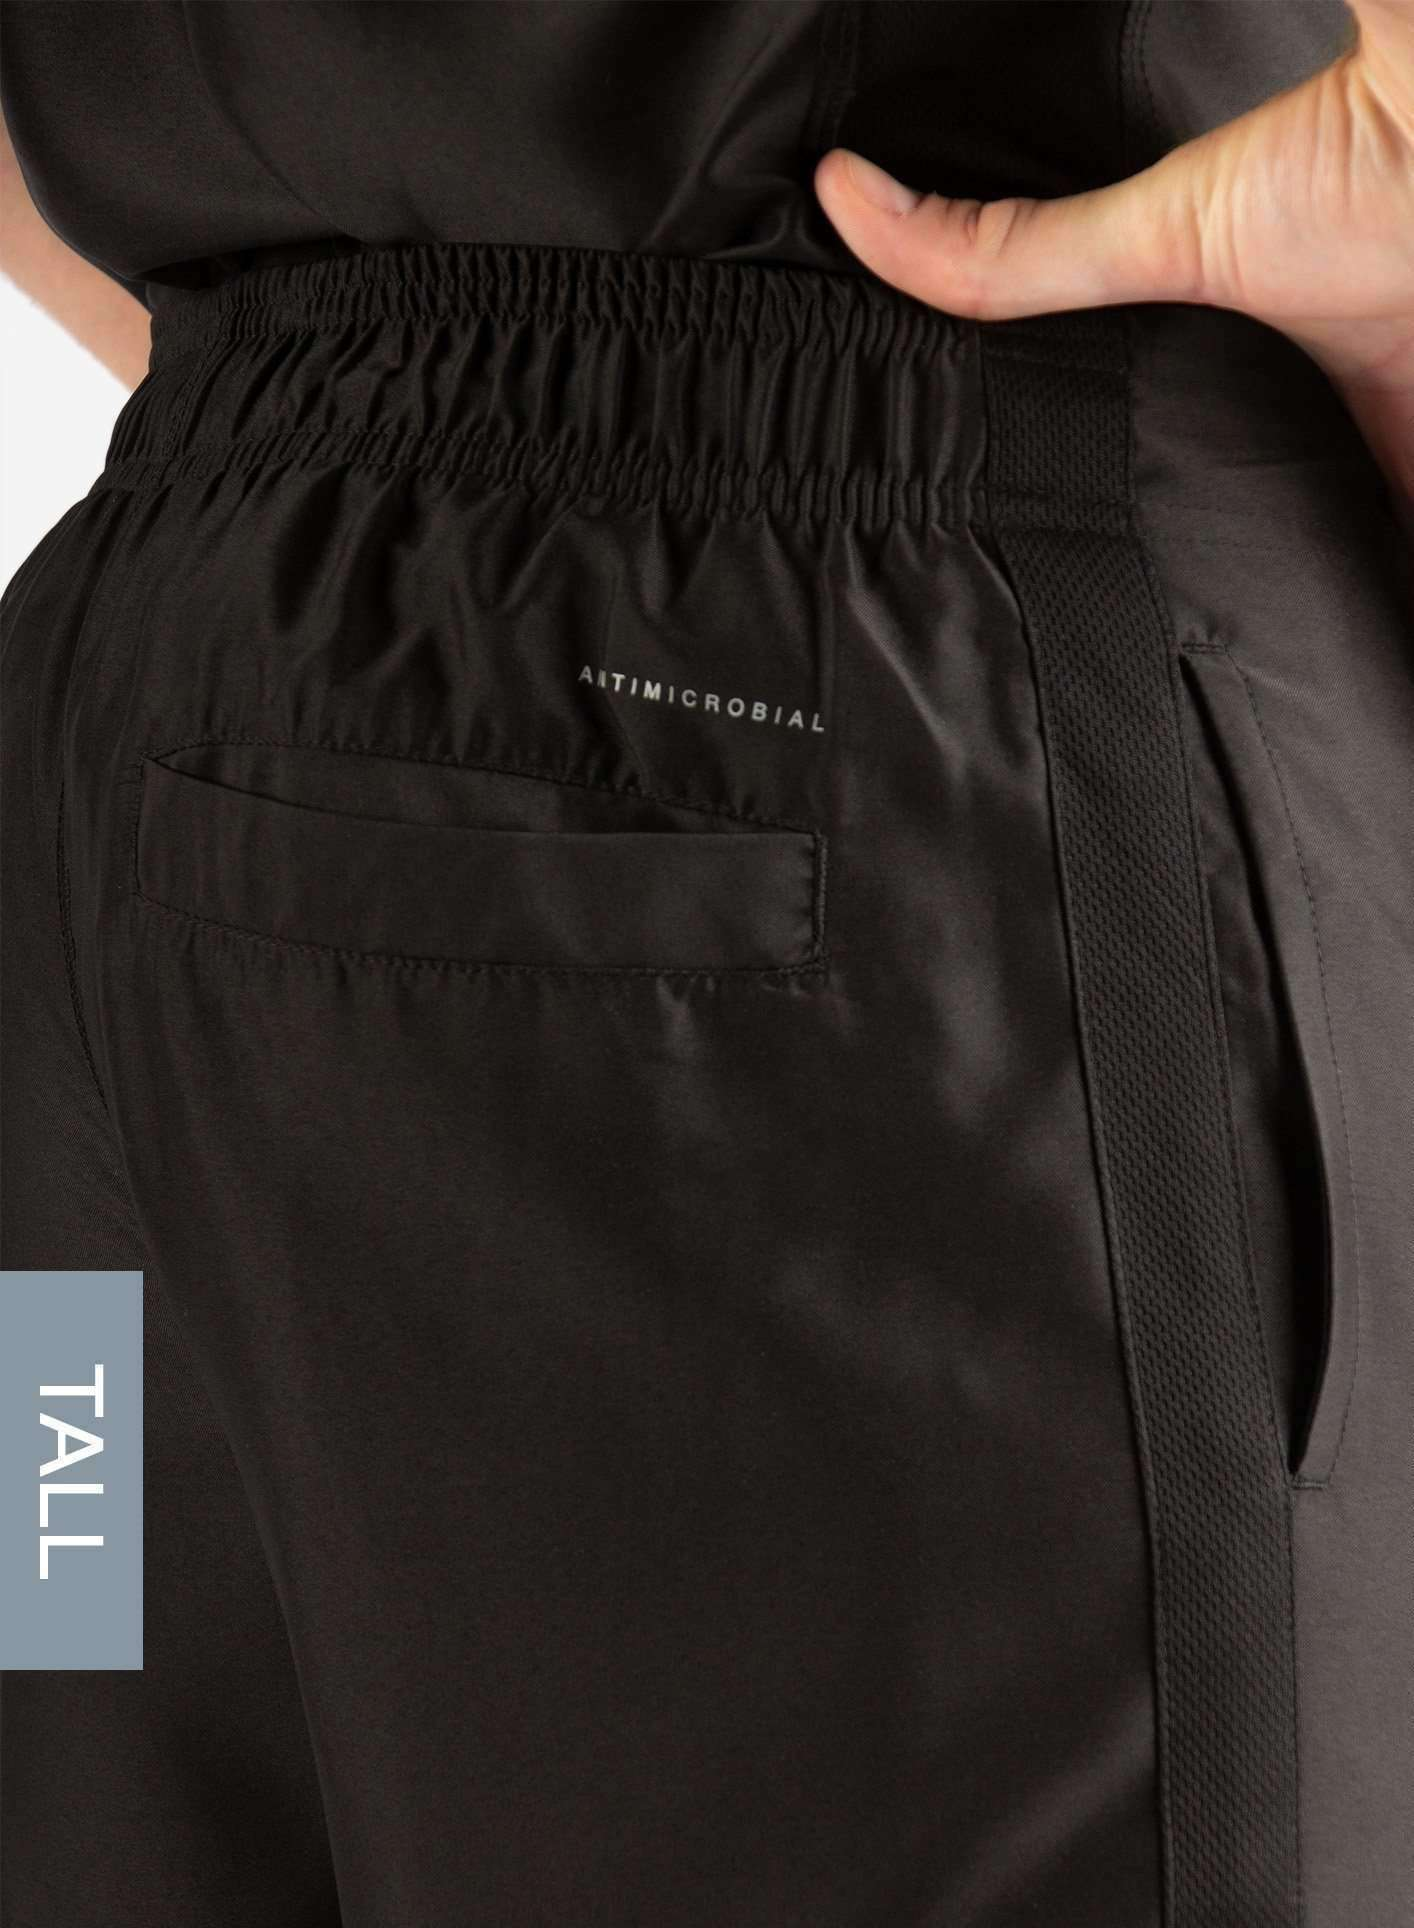 Men's Tall Slim Fit Scrub Pants in Real Black Back Pocket View